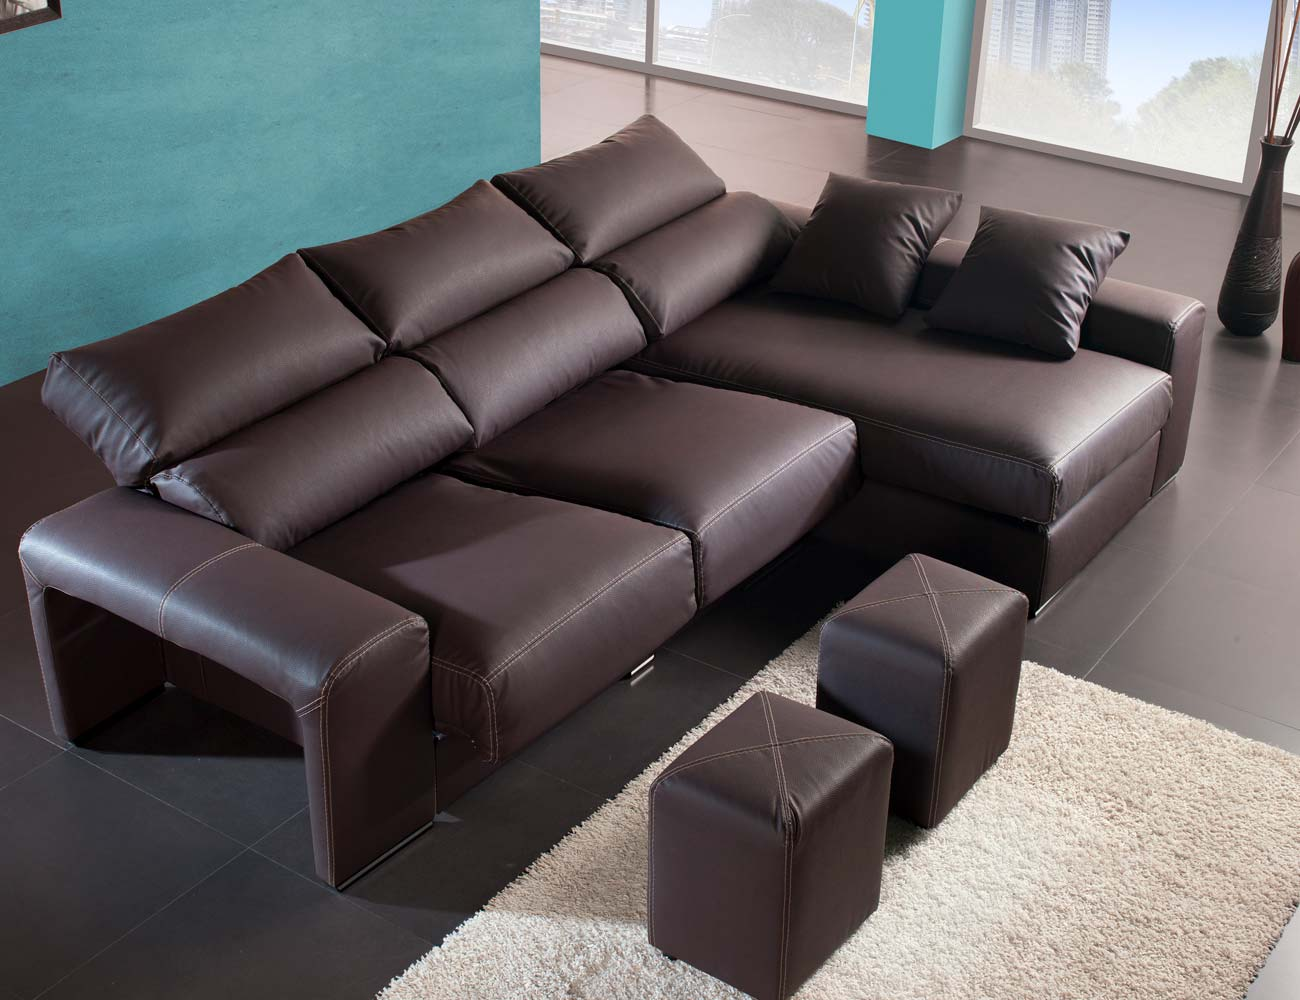 Sofa chaiselongue moderno polipiel chocolate poufs taburetes54